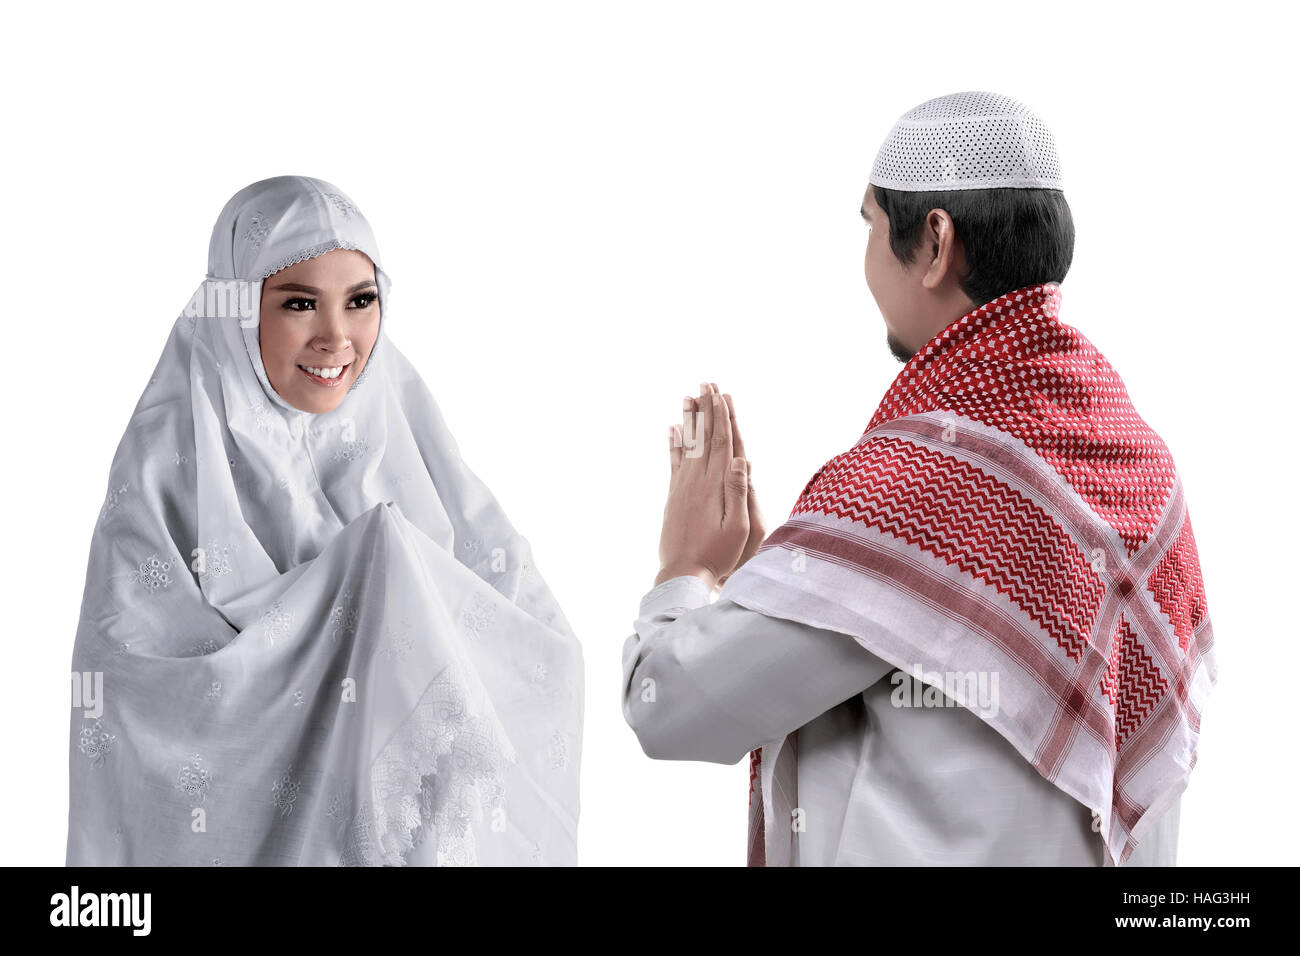 Muslim couple white dress stock photos muslim couple white dress asian muslim man and woman greet each other with muslim tradition isolated white background m4hsunfo